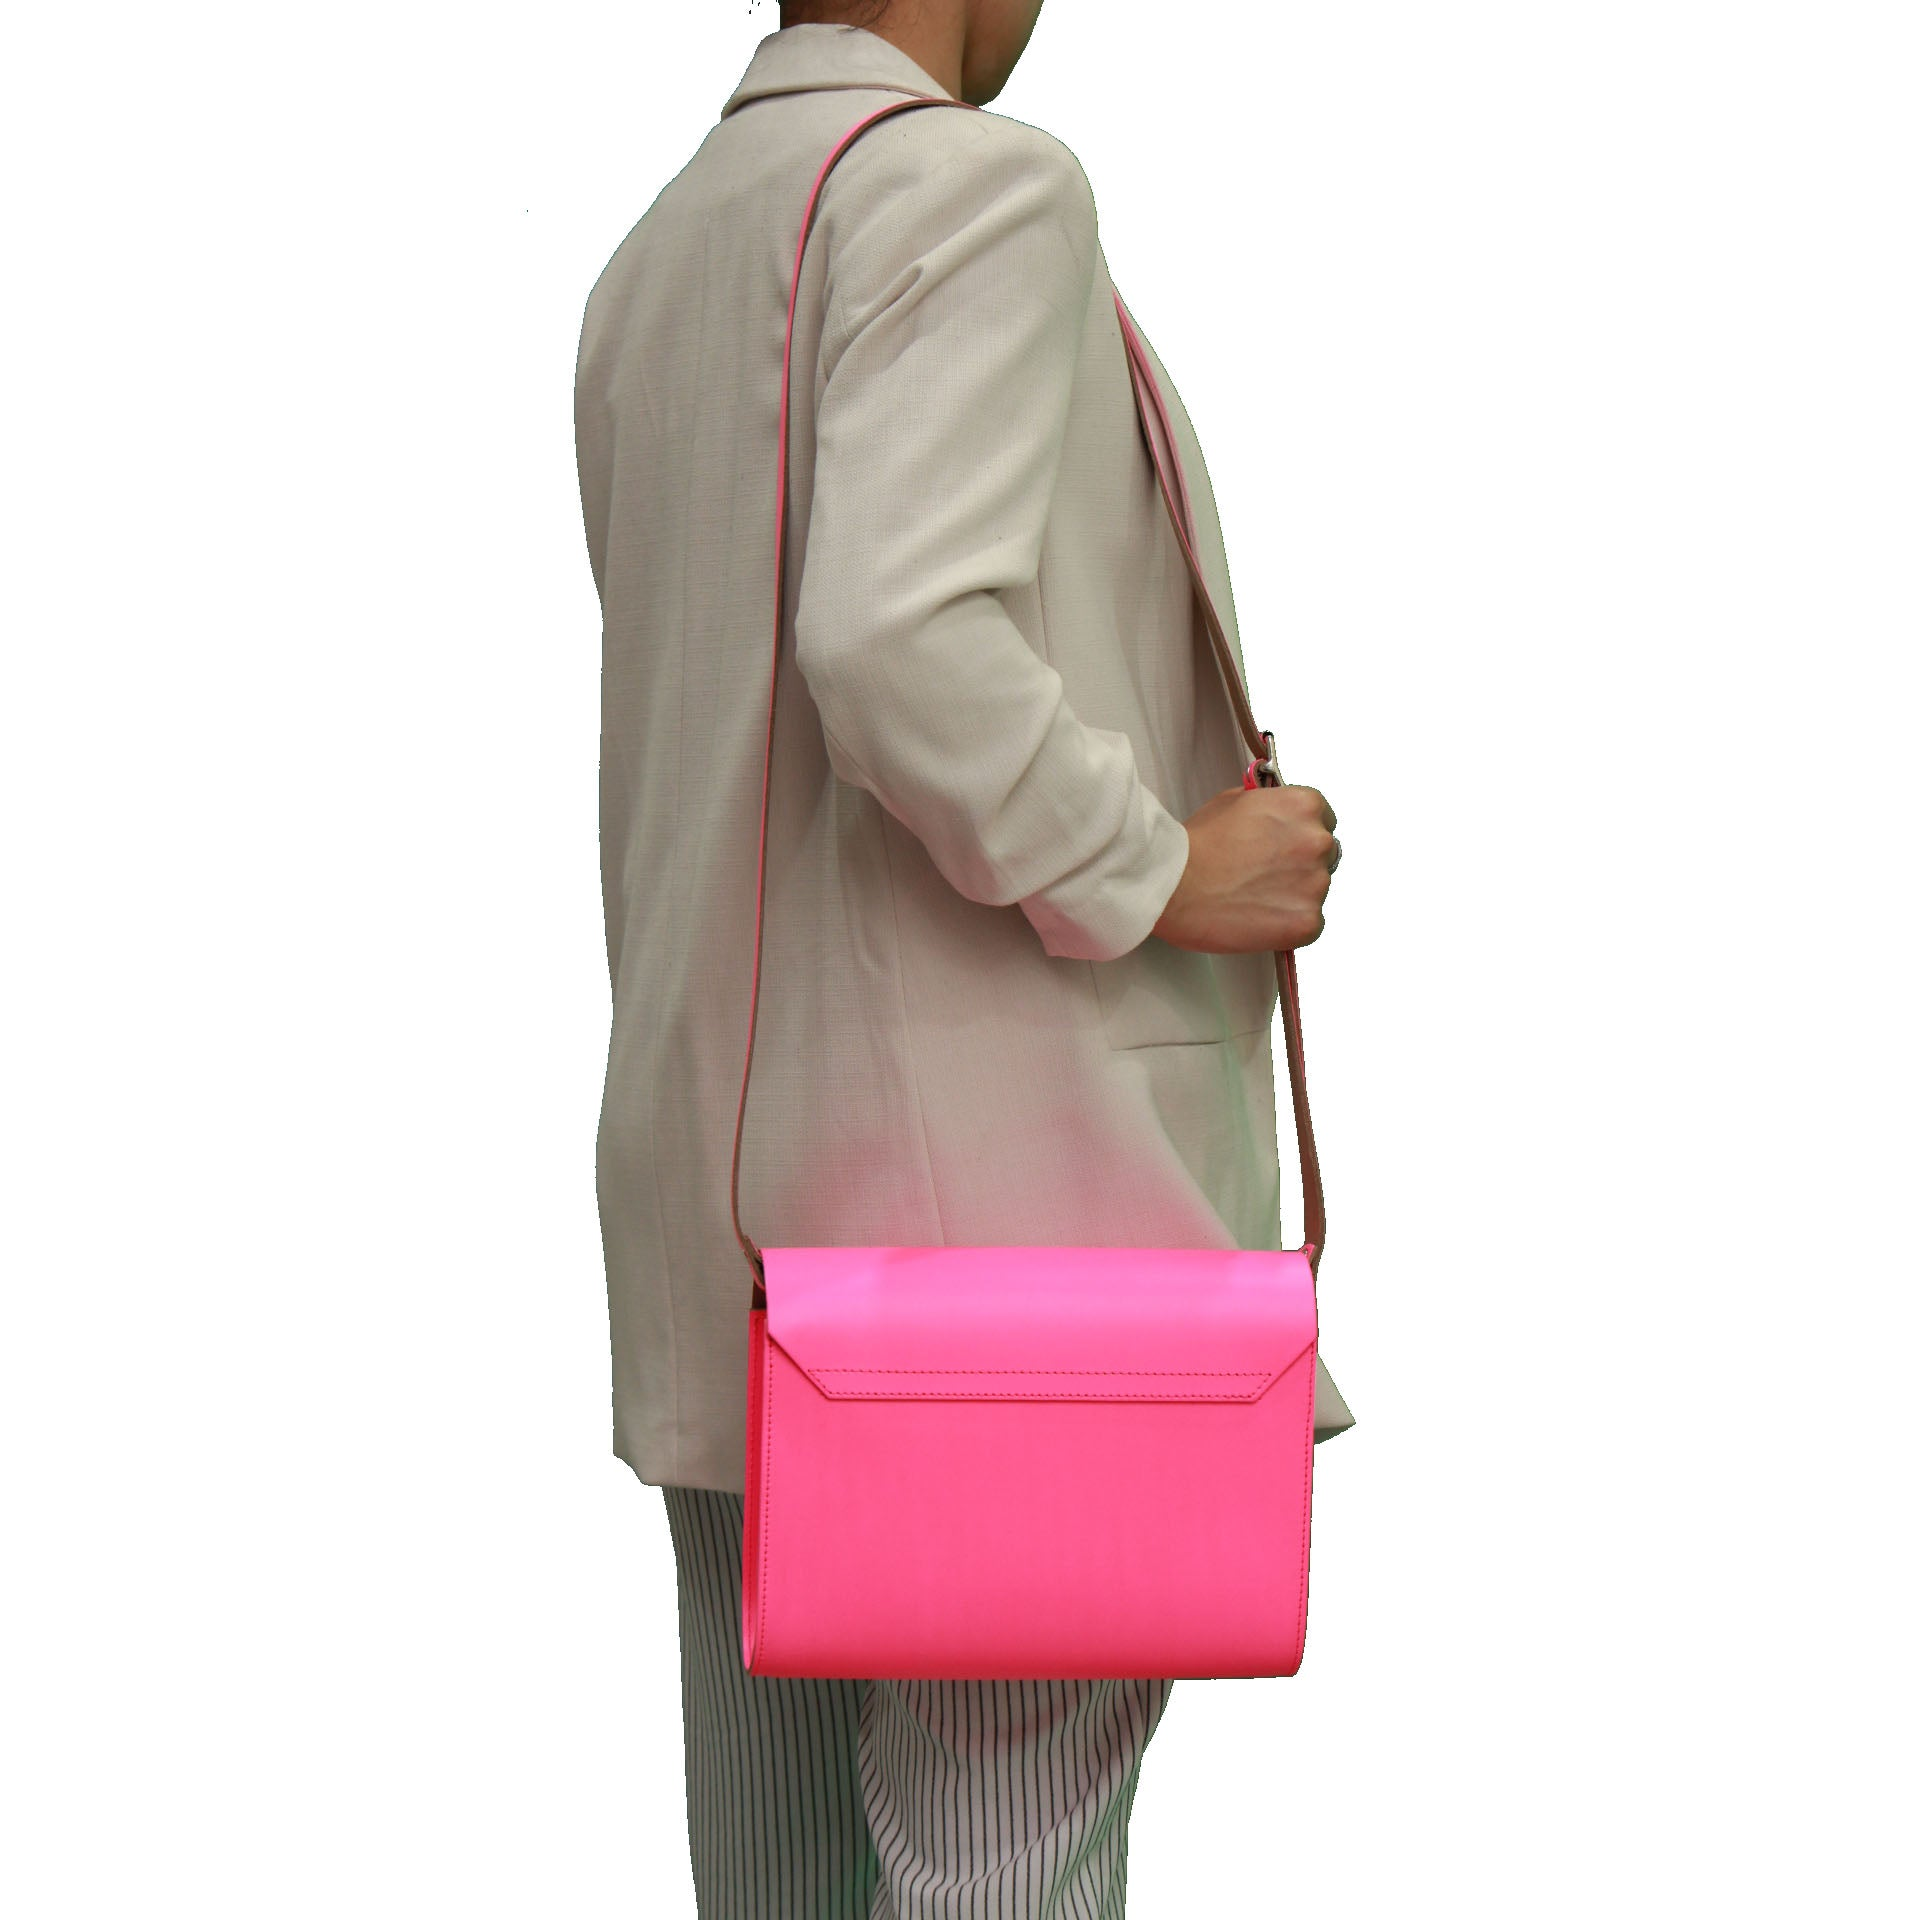 Fluorescent (neon) Pink Handmade Womens Large Leather Satchel Cross body Classic Handbag. Can be personalised with initials.